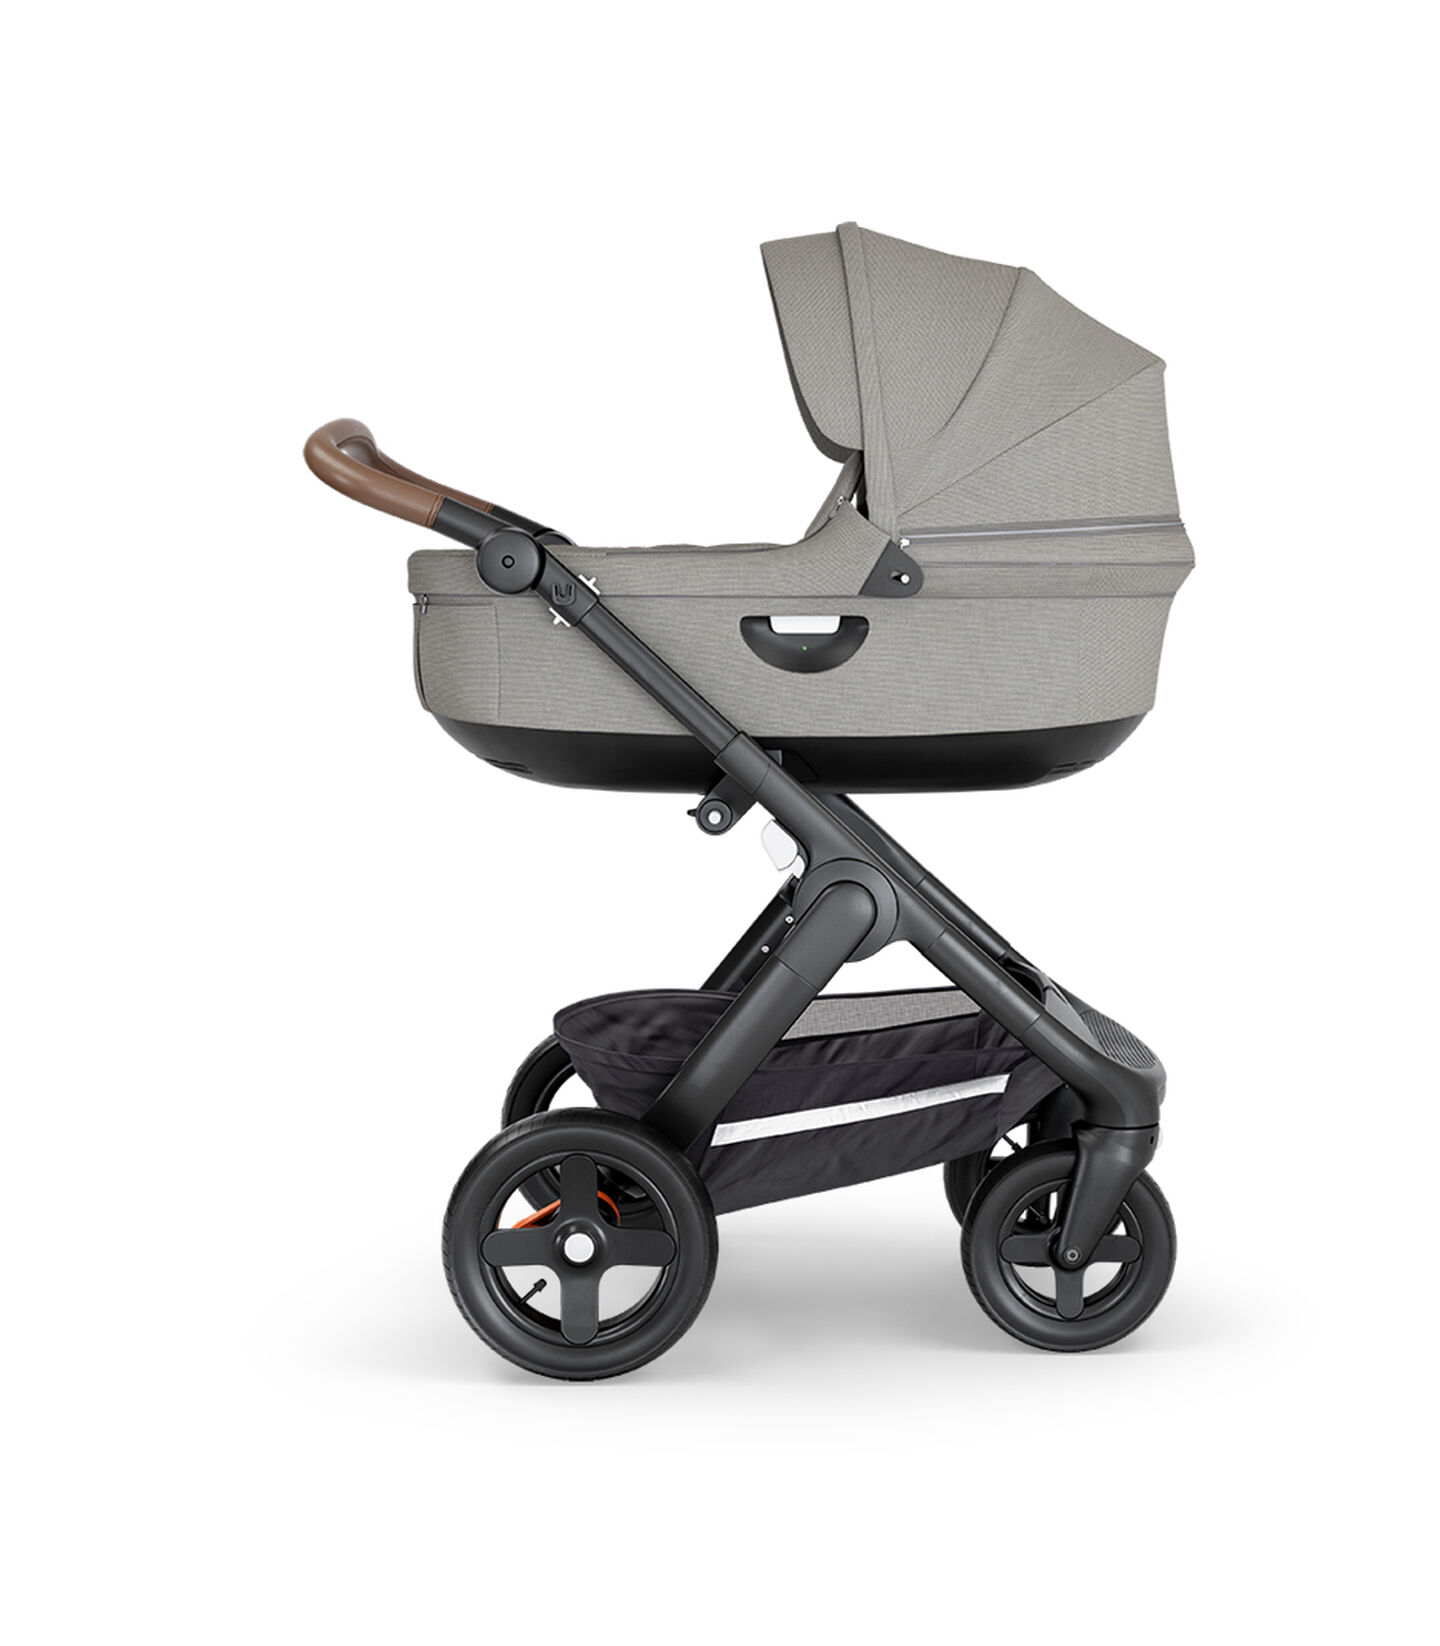 Stokke® Trailz™ with Black Chassis, Brown Leatherette and Terrain Wheels. Stokke® Stroller Carry Cot, Brush Grey.